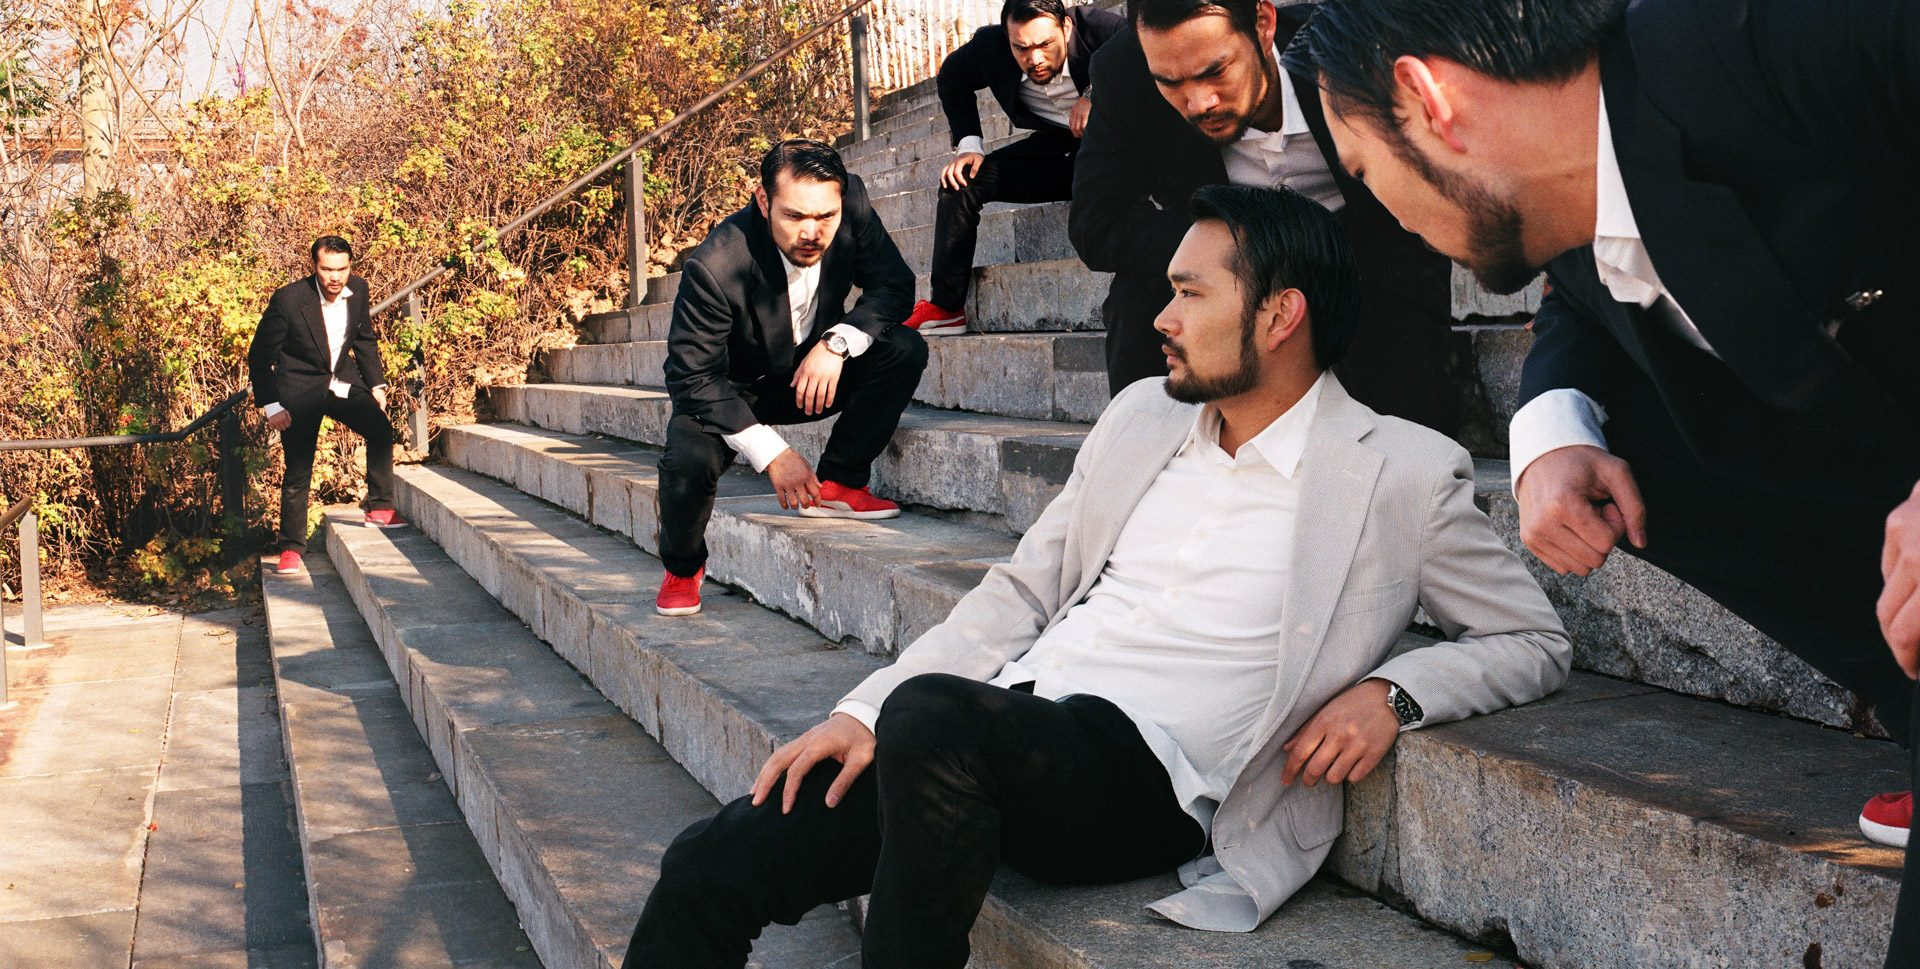 A group of asians in dark suits, staring at the same relaxed asian in a white suit.